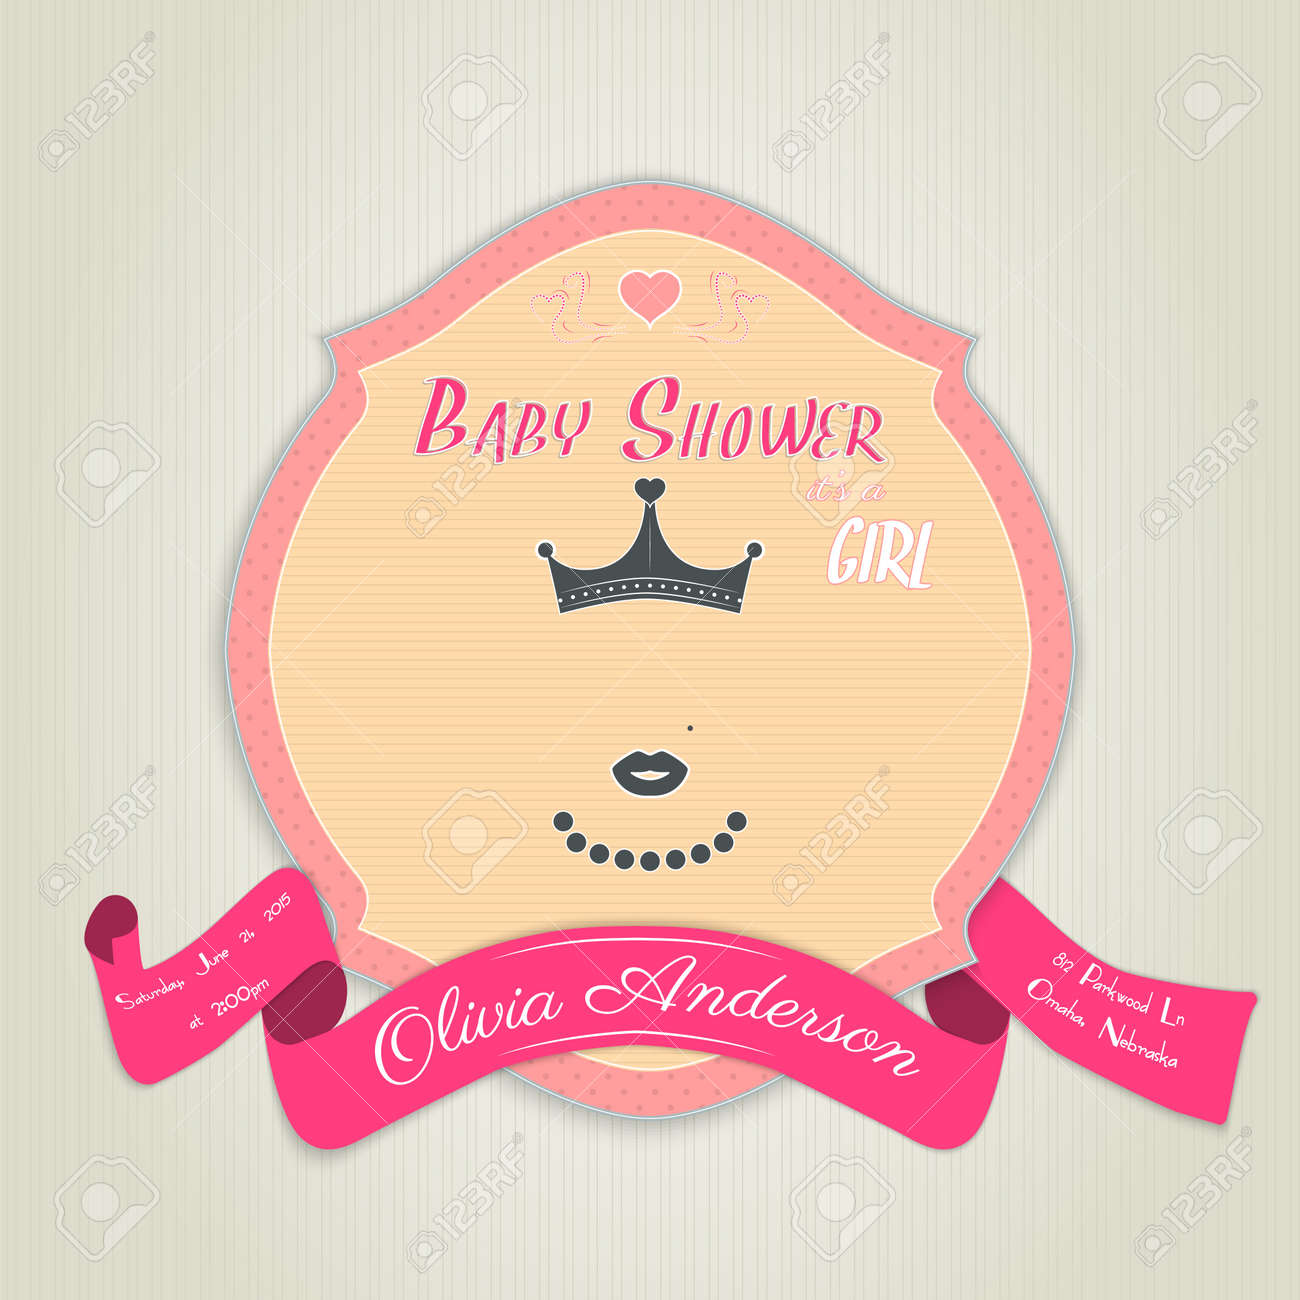 Baby Shower Invitation With Princess With A Crown, Lips And Beads ...